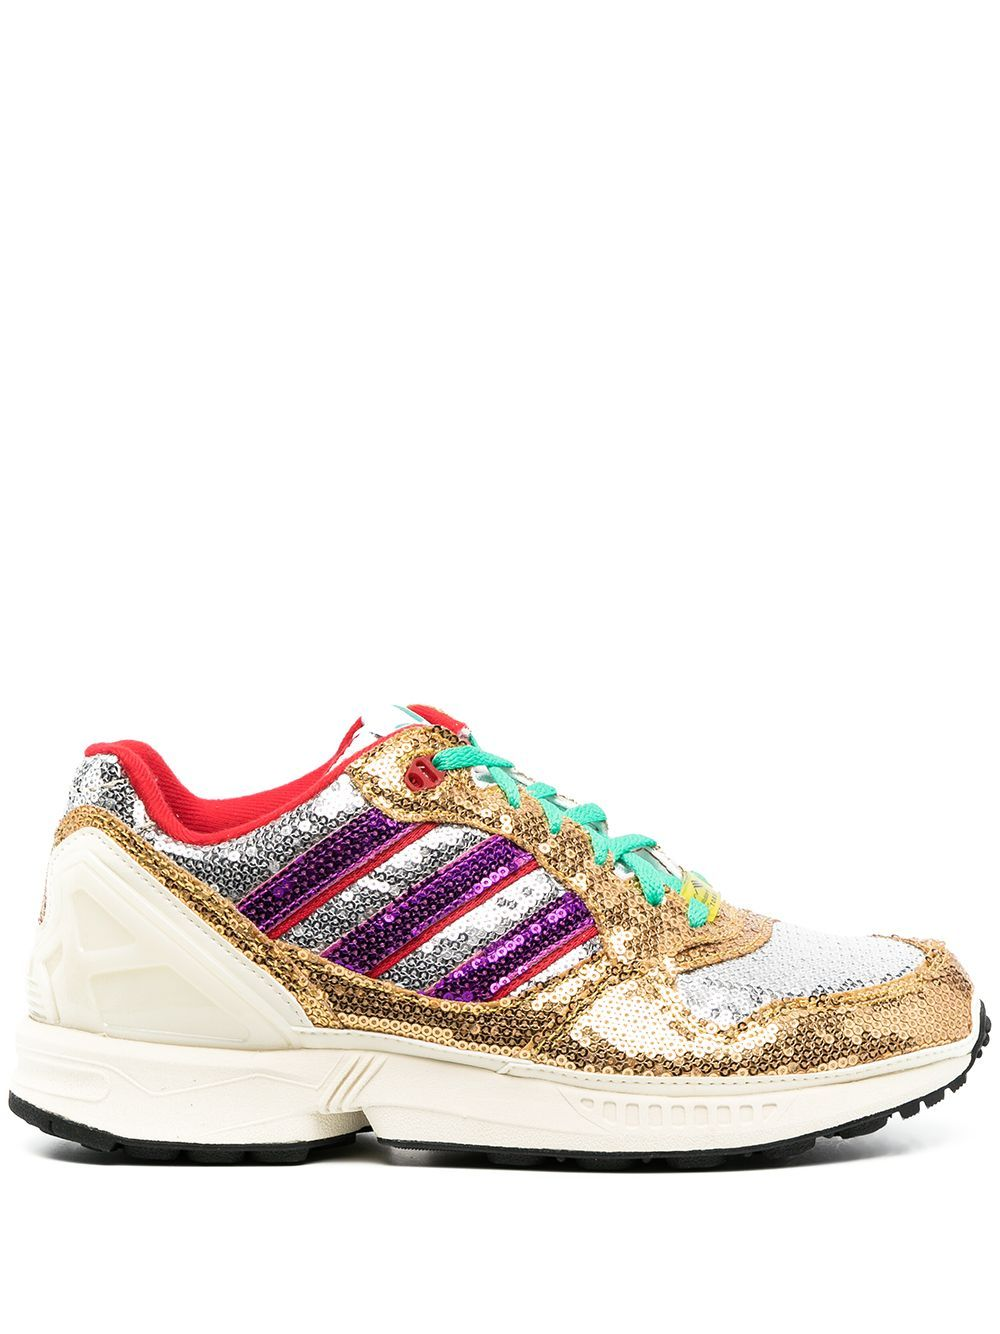 Adidas Originals Sneakers ADIDAS WOMEN'S FY6863W GOLD POLYESTER SNEAKERS